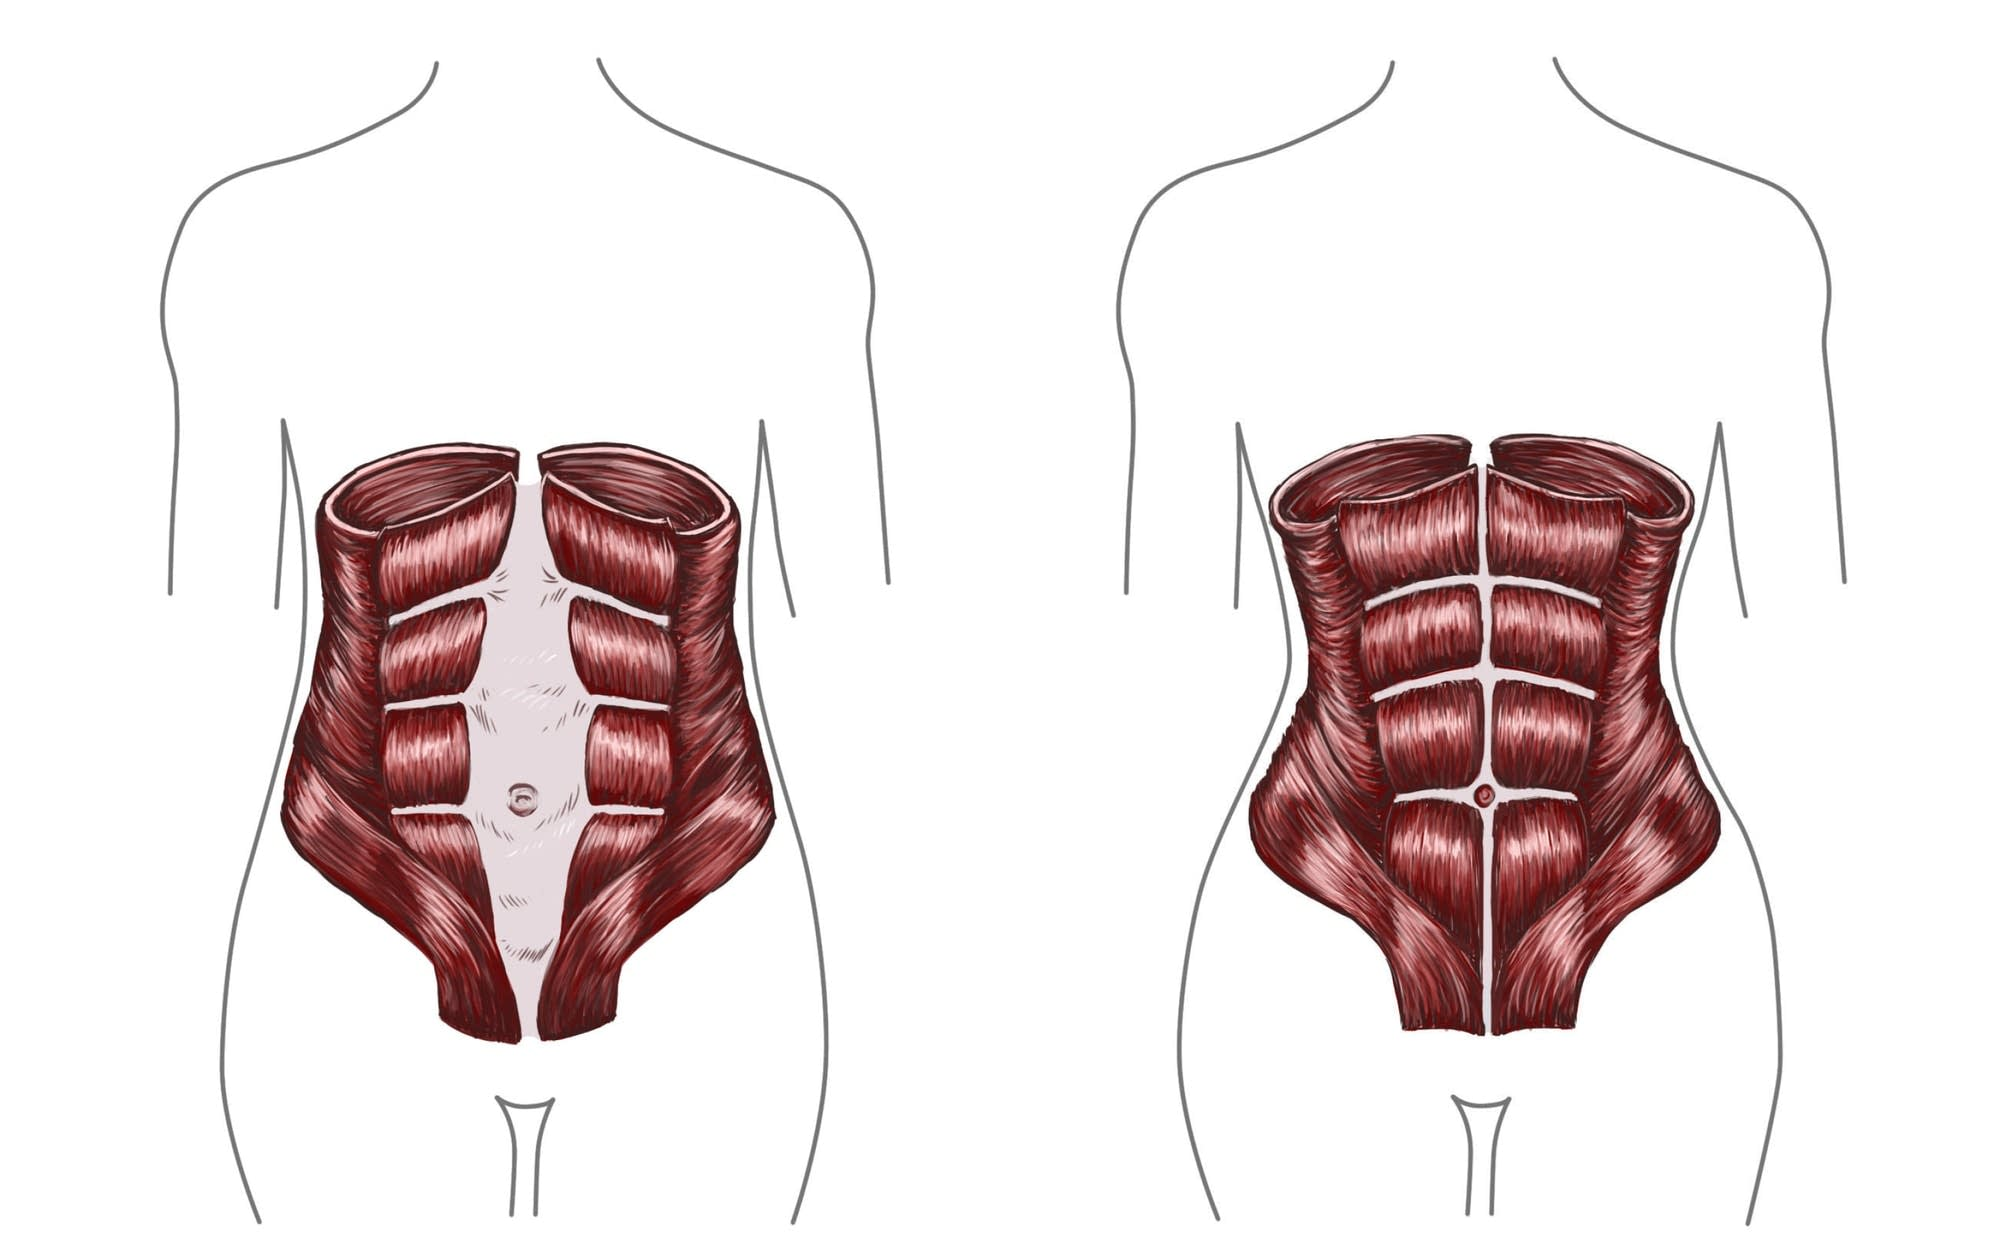 The diastasis recti